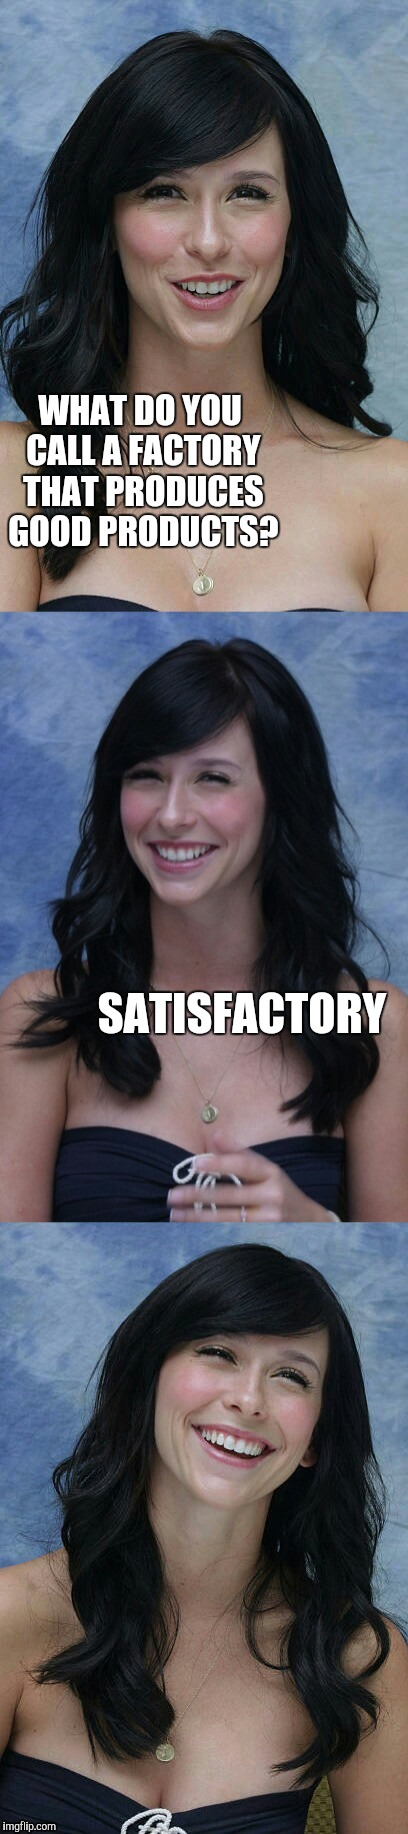 Jennifer Love Hewitt bad puns template | WHAT DO YOU CALL A FACTORY THAT PRODUCES GOOD PRODUCTS? SATISFACTORY | image tagged in jennifer love hewitt bad puns template,jbmemegeek,jennifer love hewitt,bad puns | made w/ Imgflip meme maker